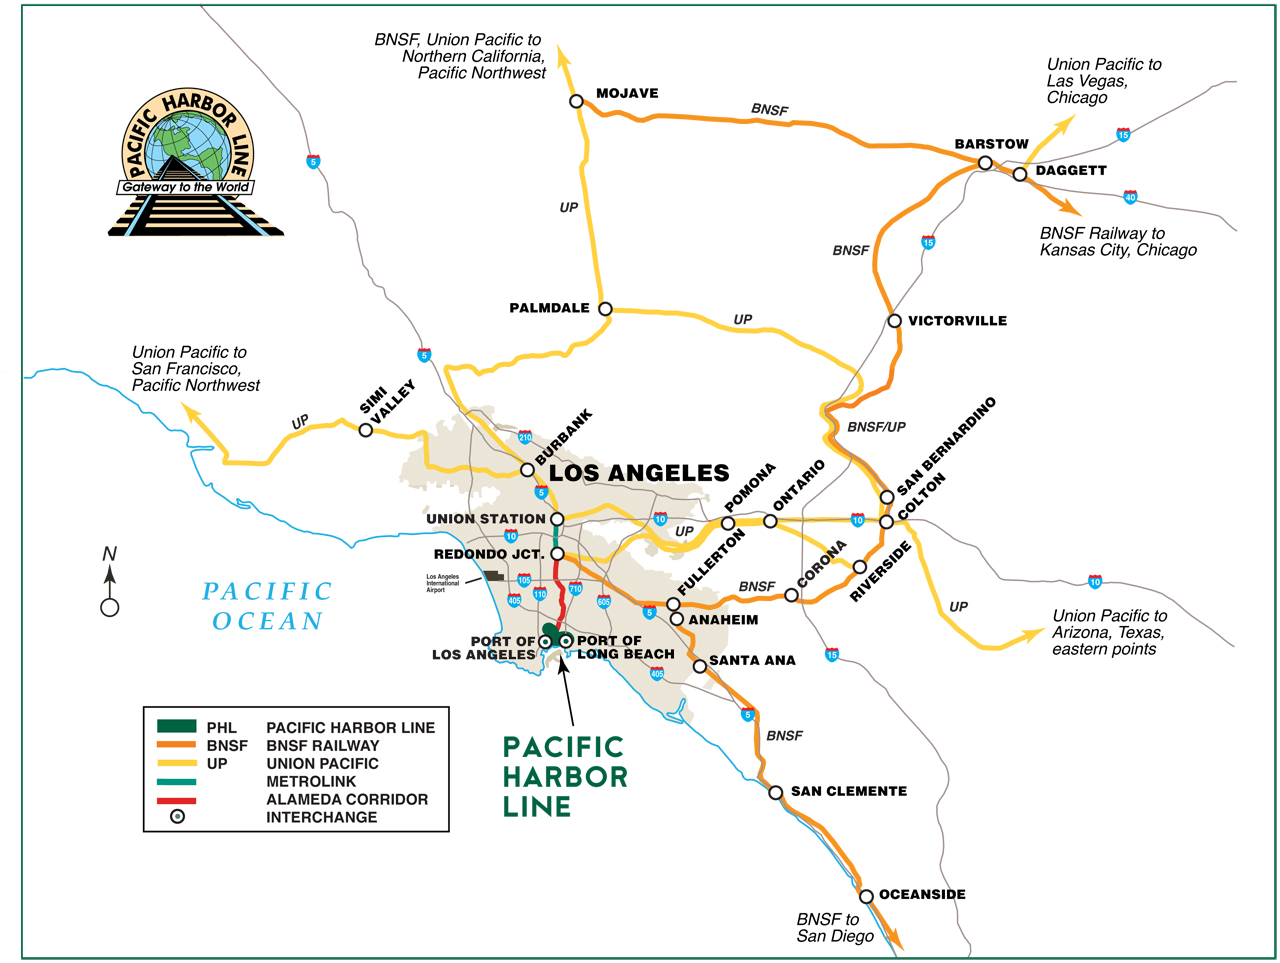 PHL, the Railway Age 2009 Short Line of the Year, provides rail switching services to customers in the Ports of Long Beach and Los Angeles.